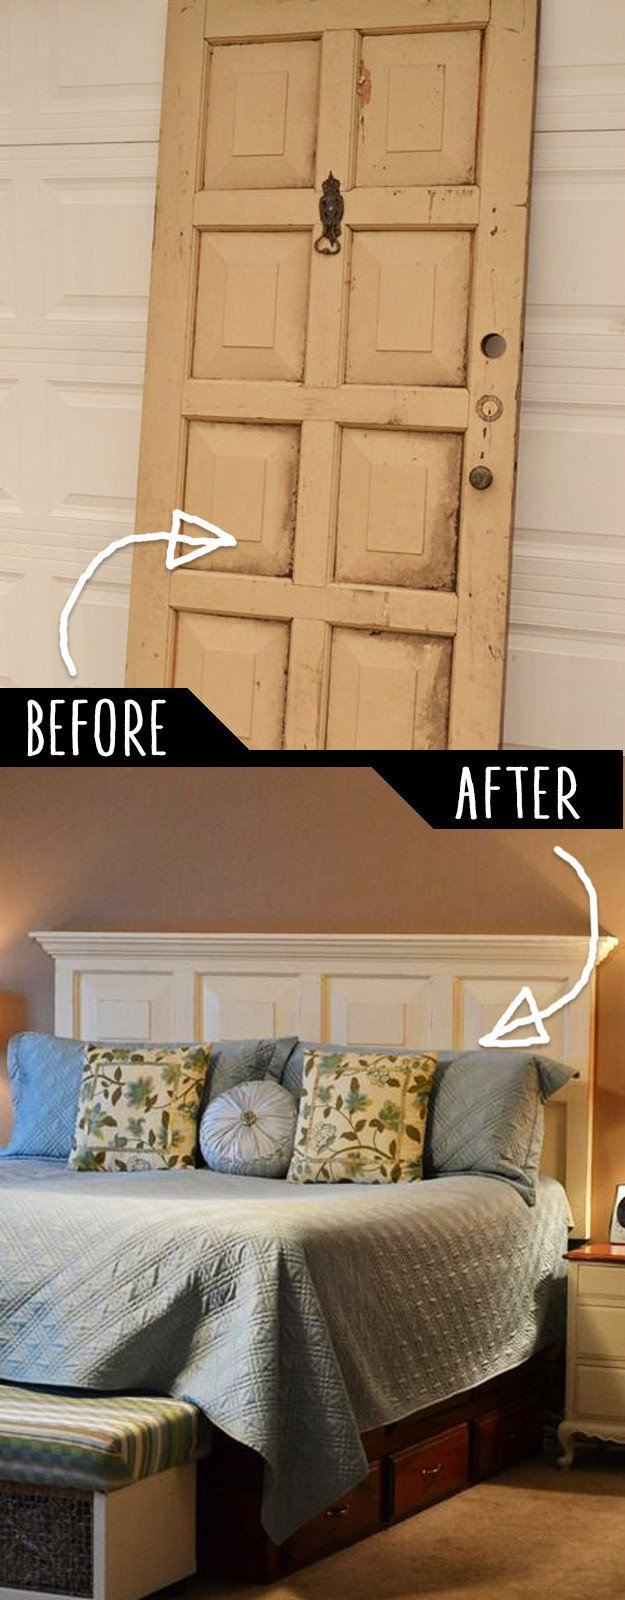 Diy Bedroom Decor It Yourself Inspirational 39 Clever Diy Furniture Hacks